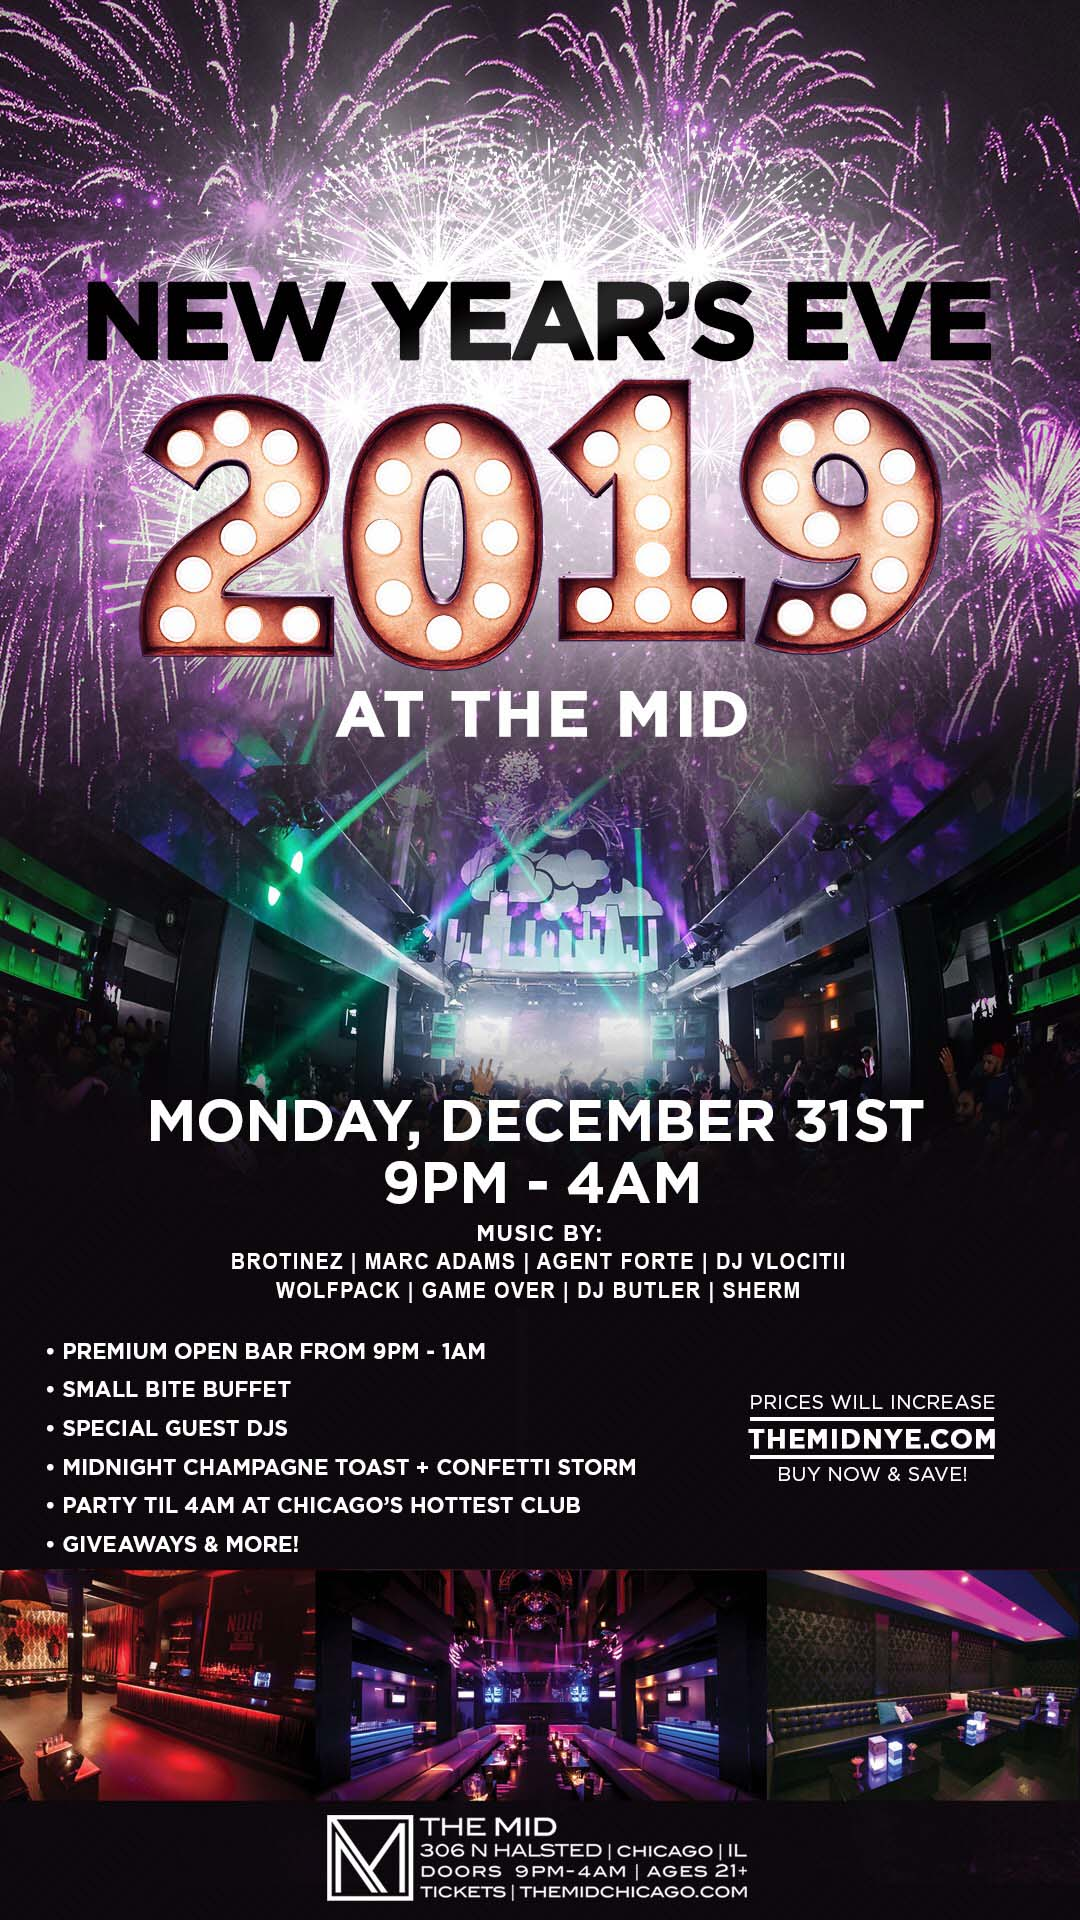 New Year's Eve Party at the MID - Tickets include A PREMIUM OPEN BAR WITH A SMALL BITE BUFFET FROM 9pm - 1AM